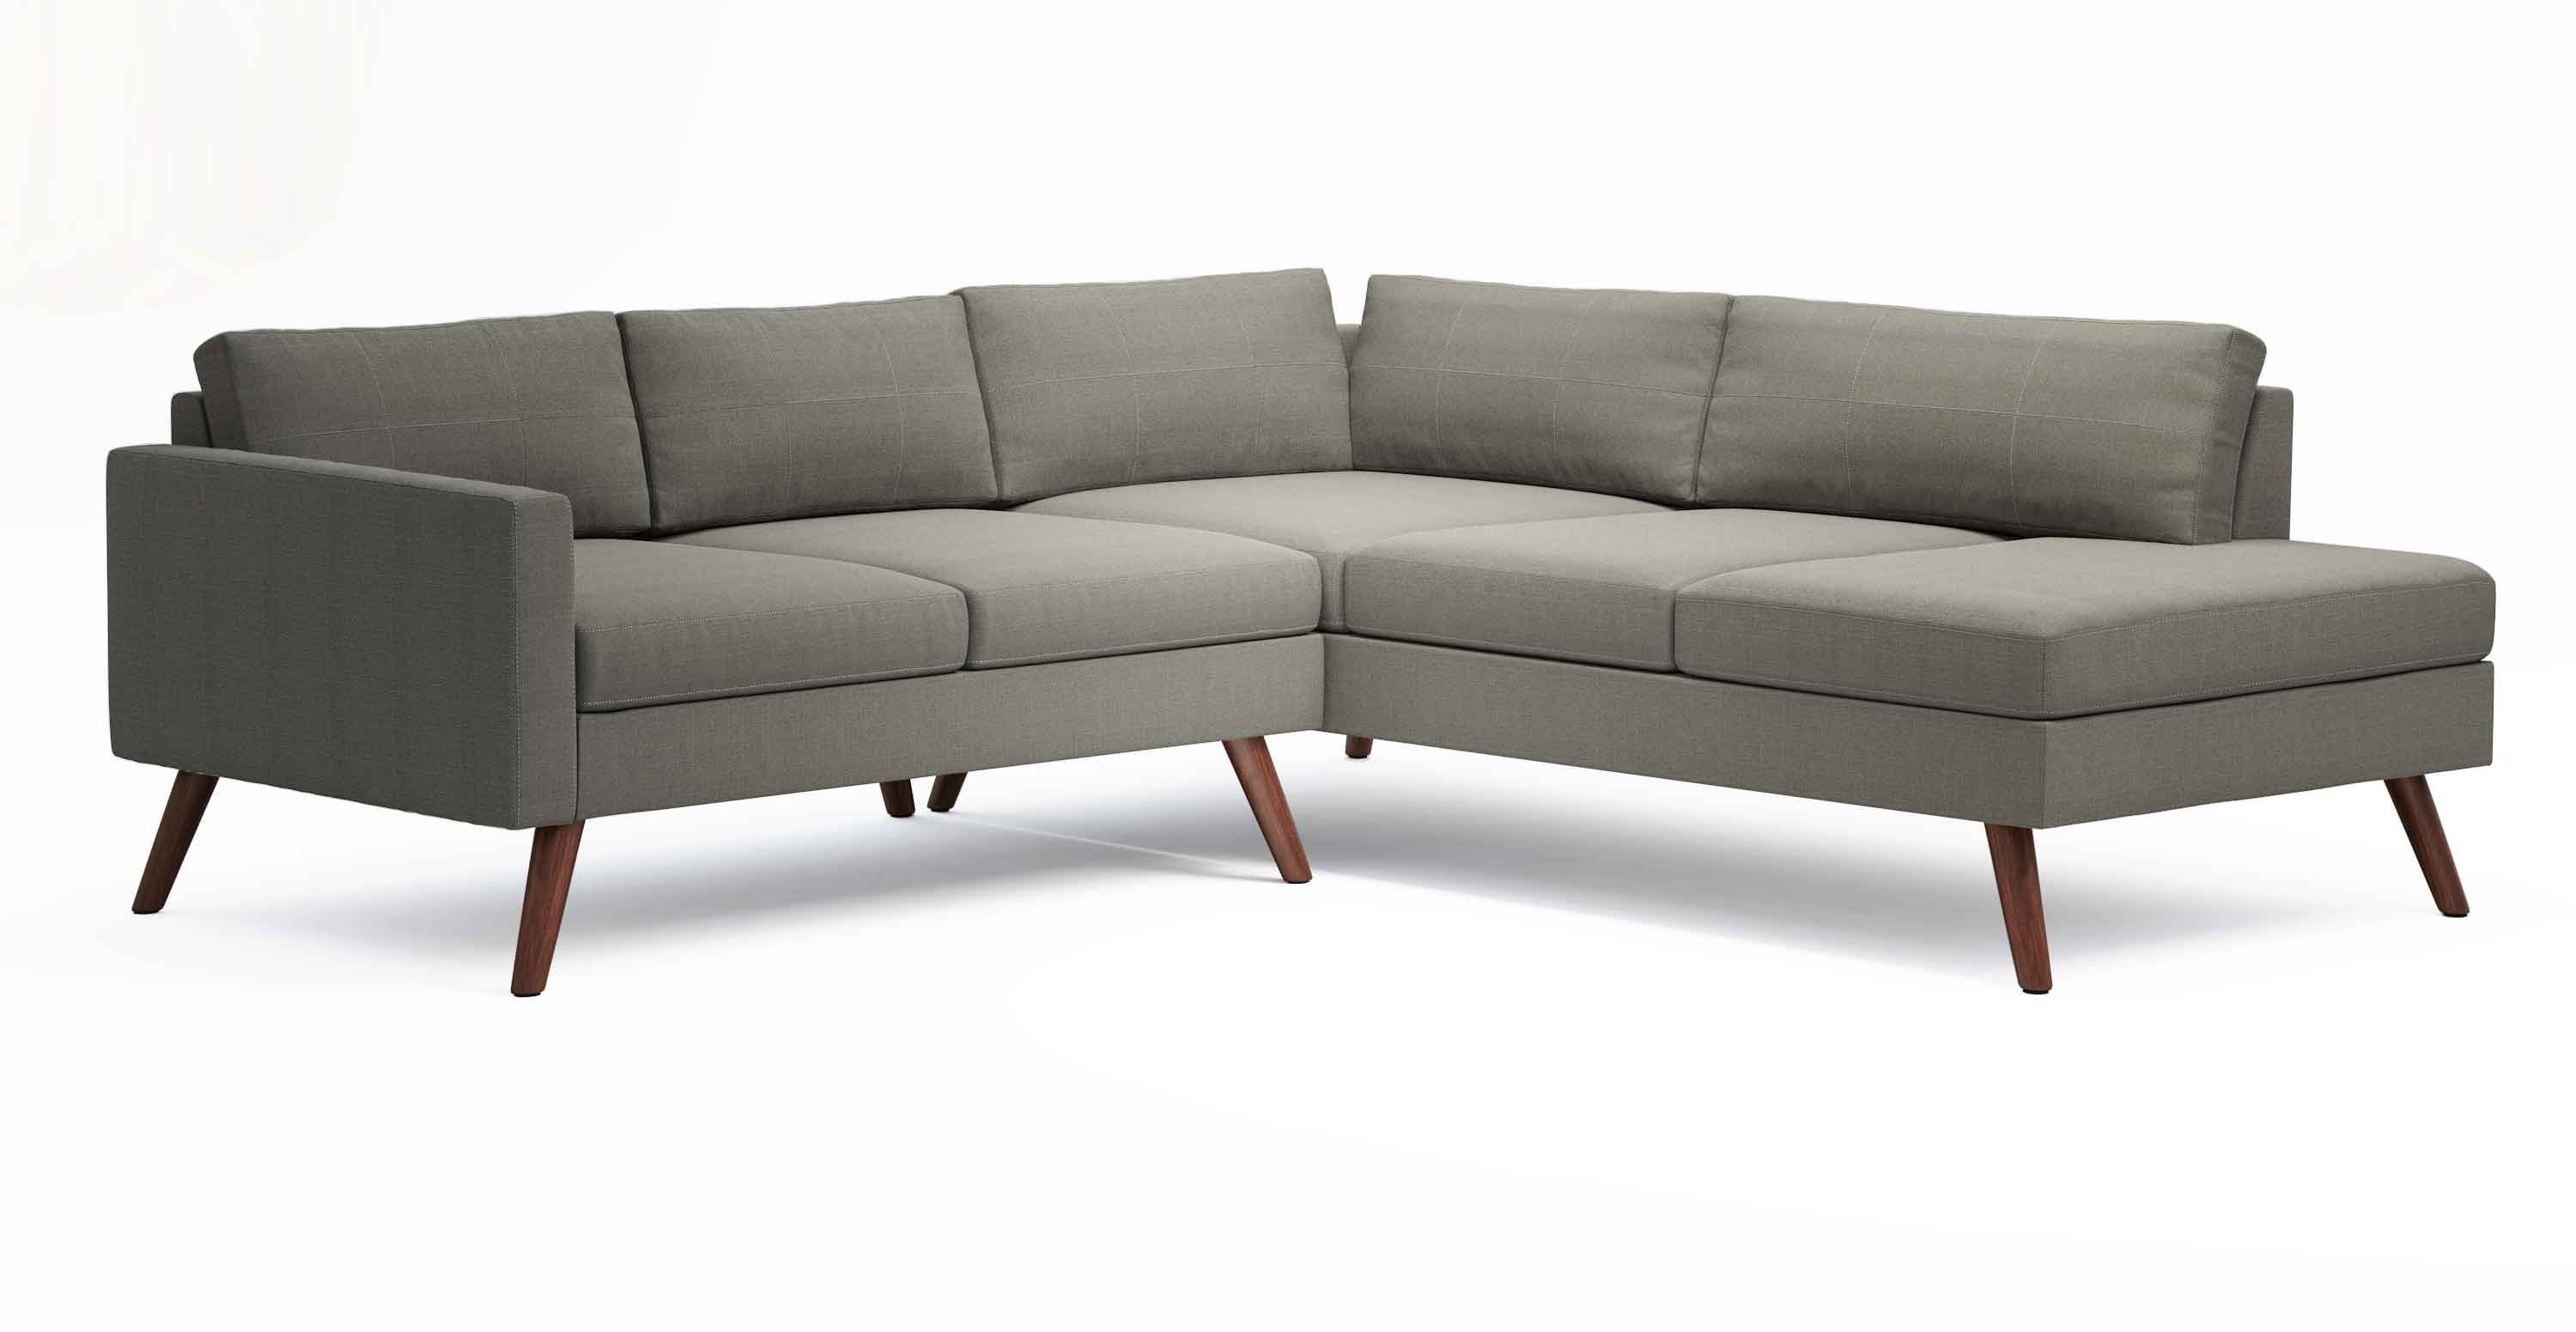 cool sectional sofas leather pattern-Contemporary Sectional sofas Leather Gallery